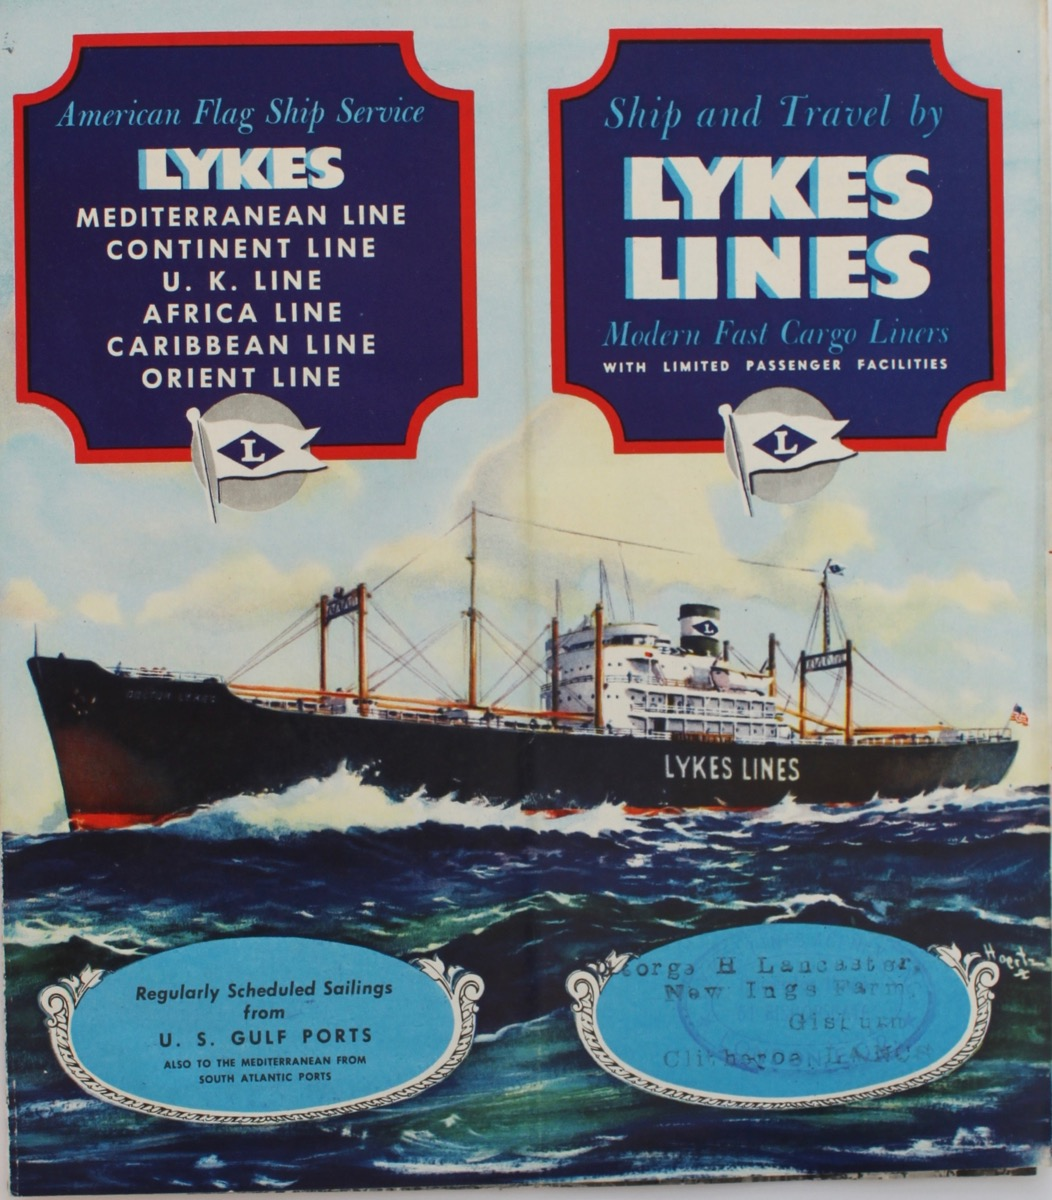 Image for Ship and Travel by Lykes Lines, Modern Fast Cargo Liners.